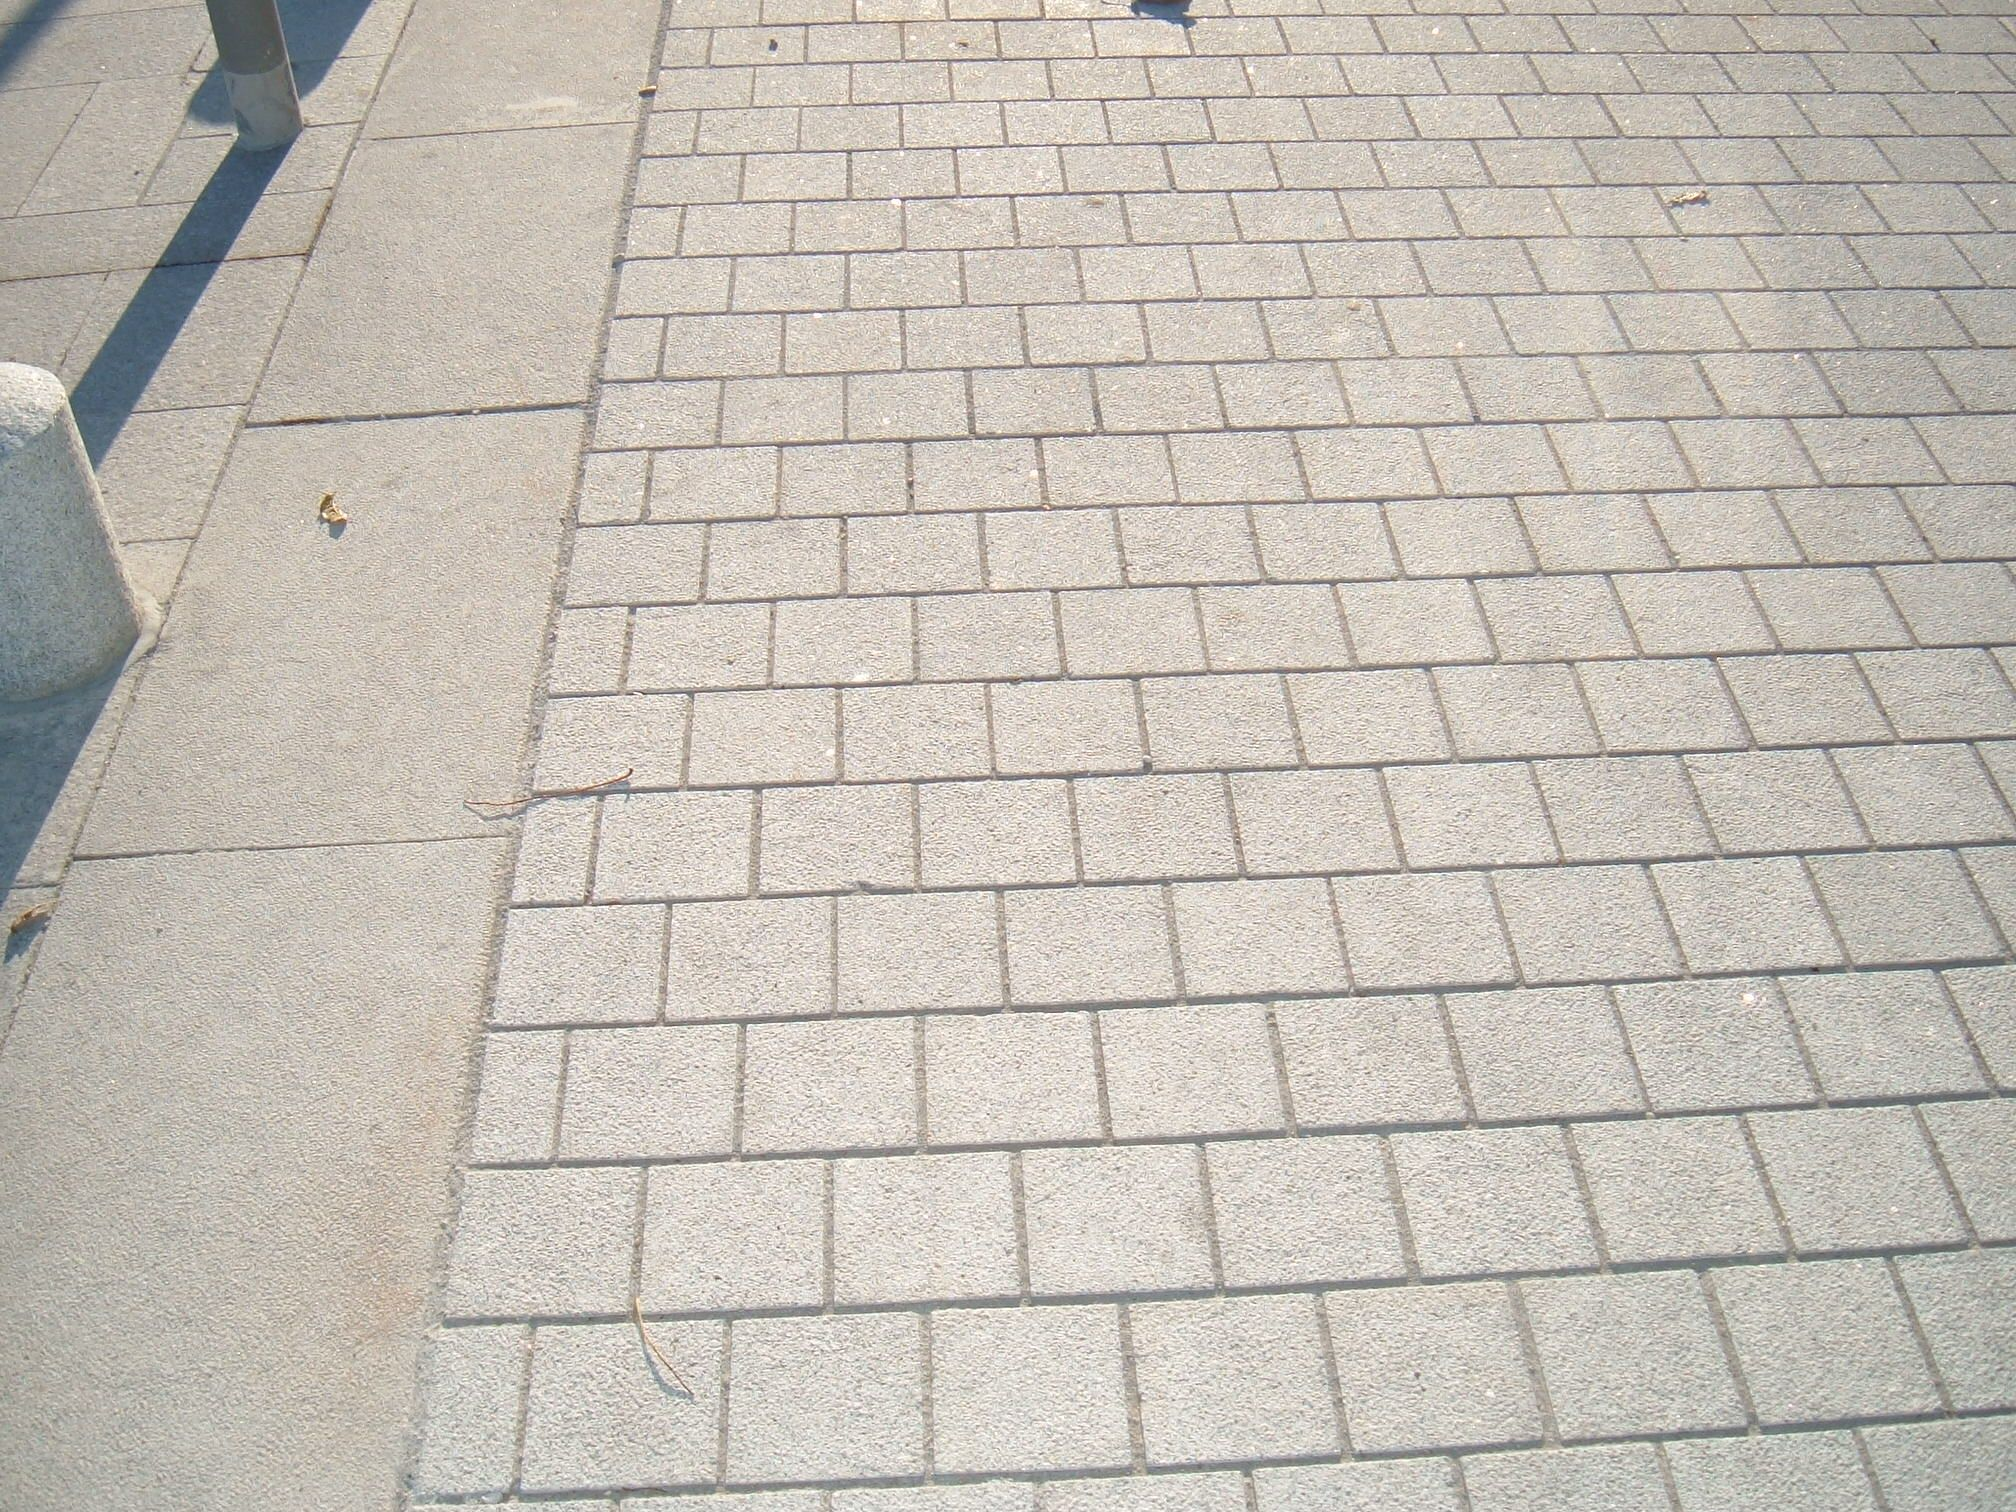 Exceptional Silver Sawn Granite Paving Setts With A Joint Www.bbsnaturalstone.com